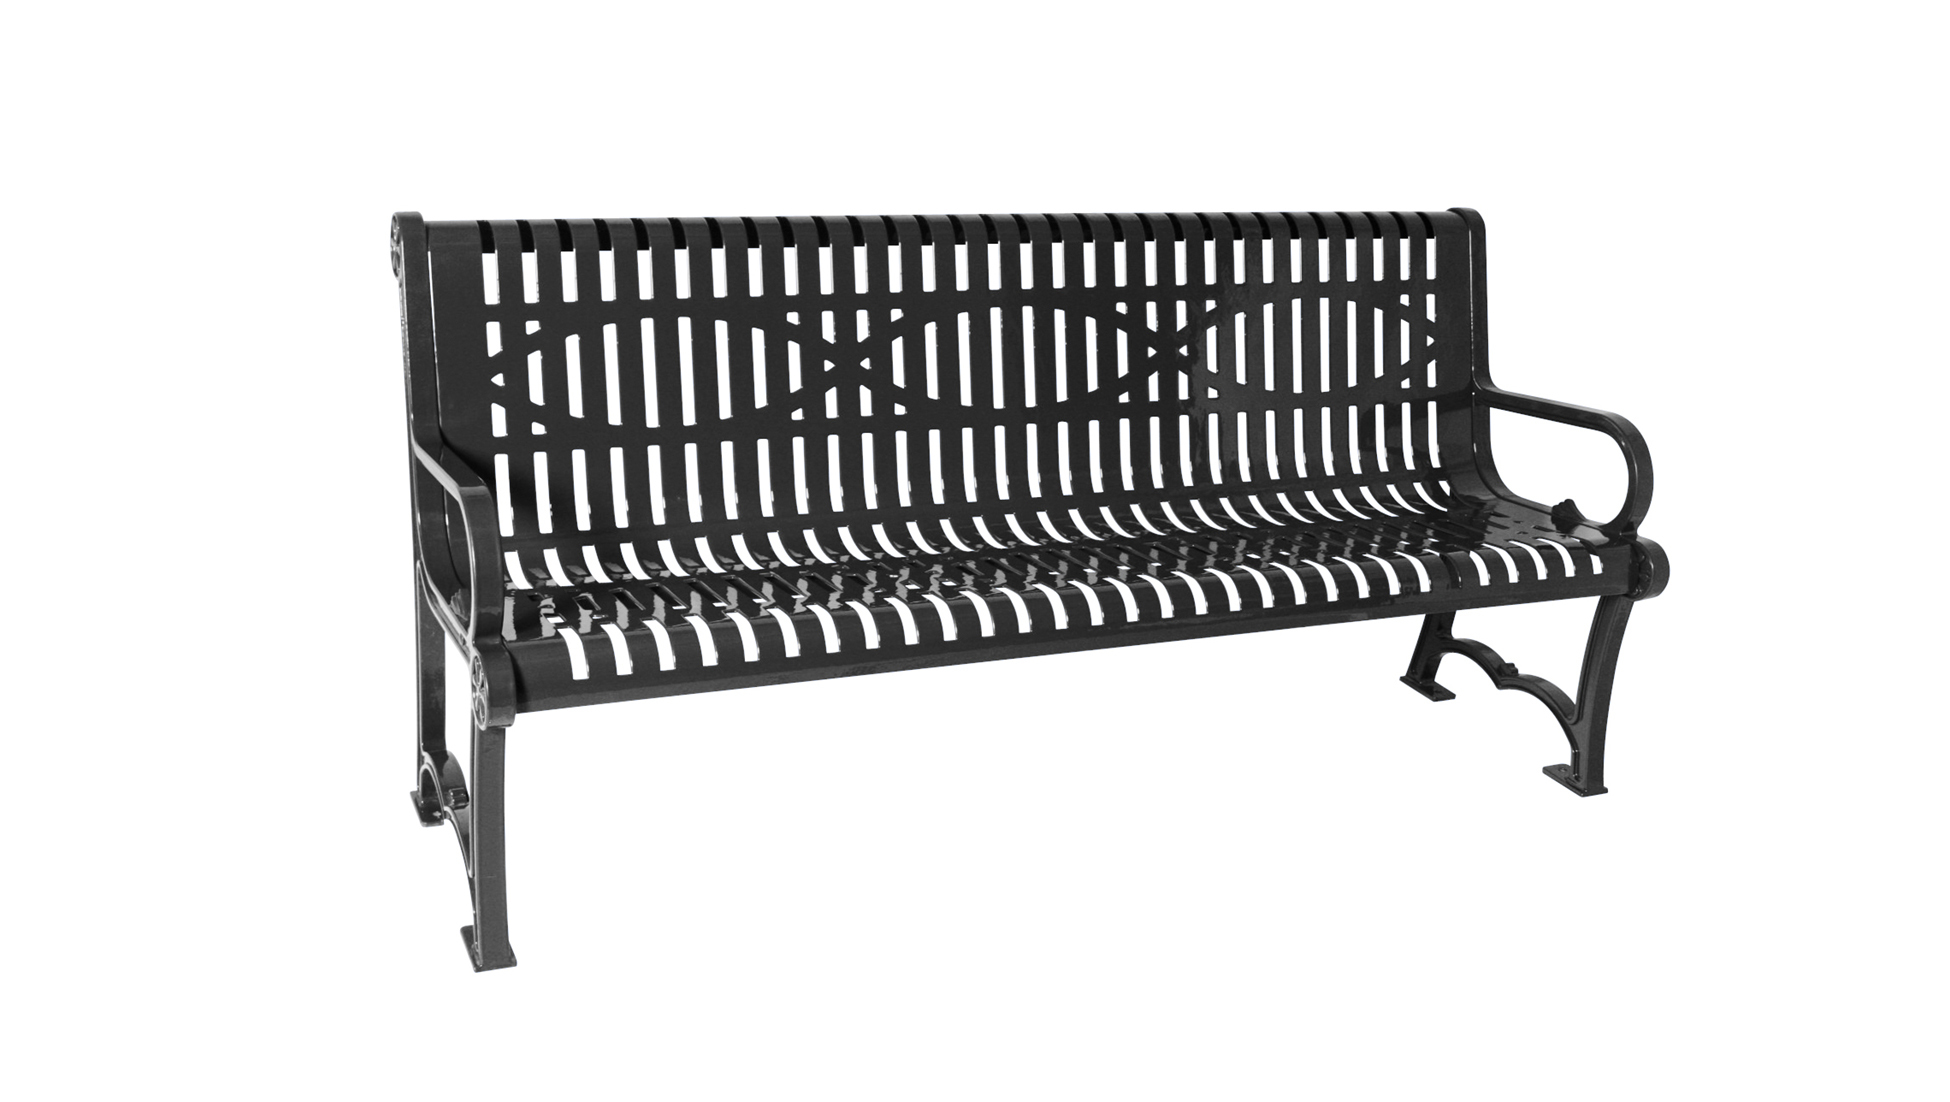 Series 1100 Bench, Wave Style